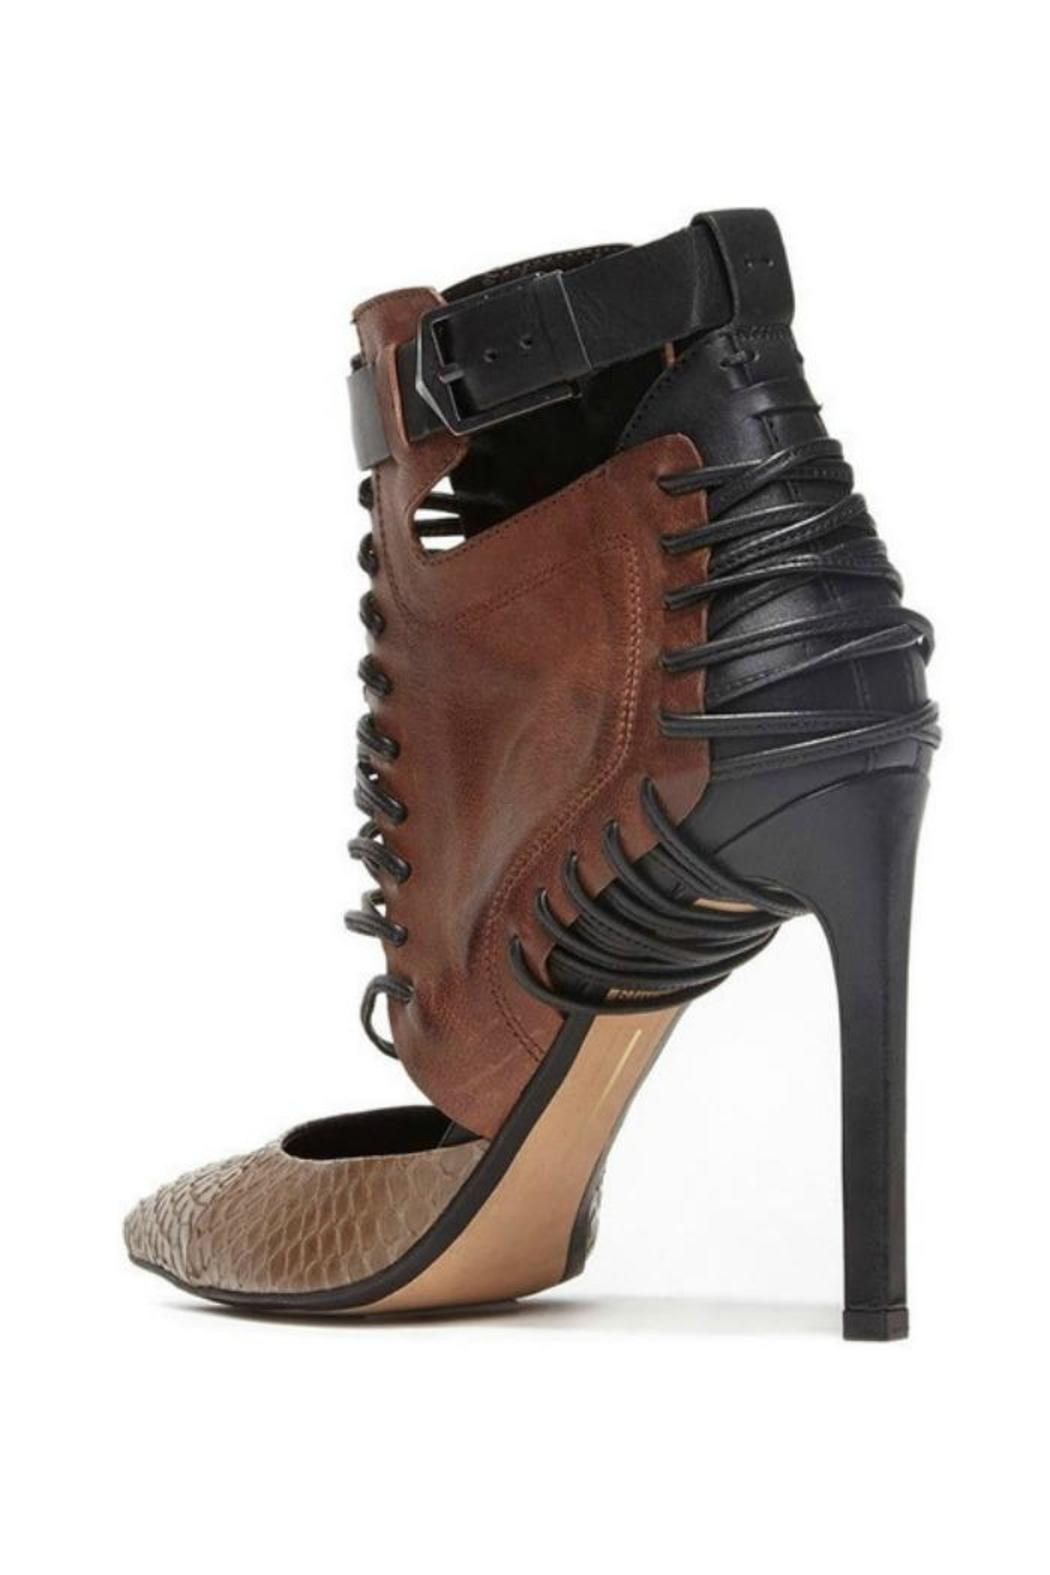 Dolce Vita Brown Bootie Pump from Williamsburg by The Shoe